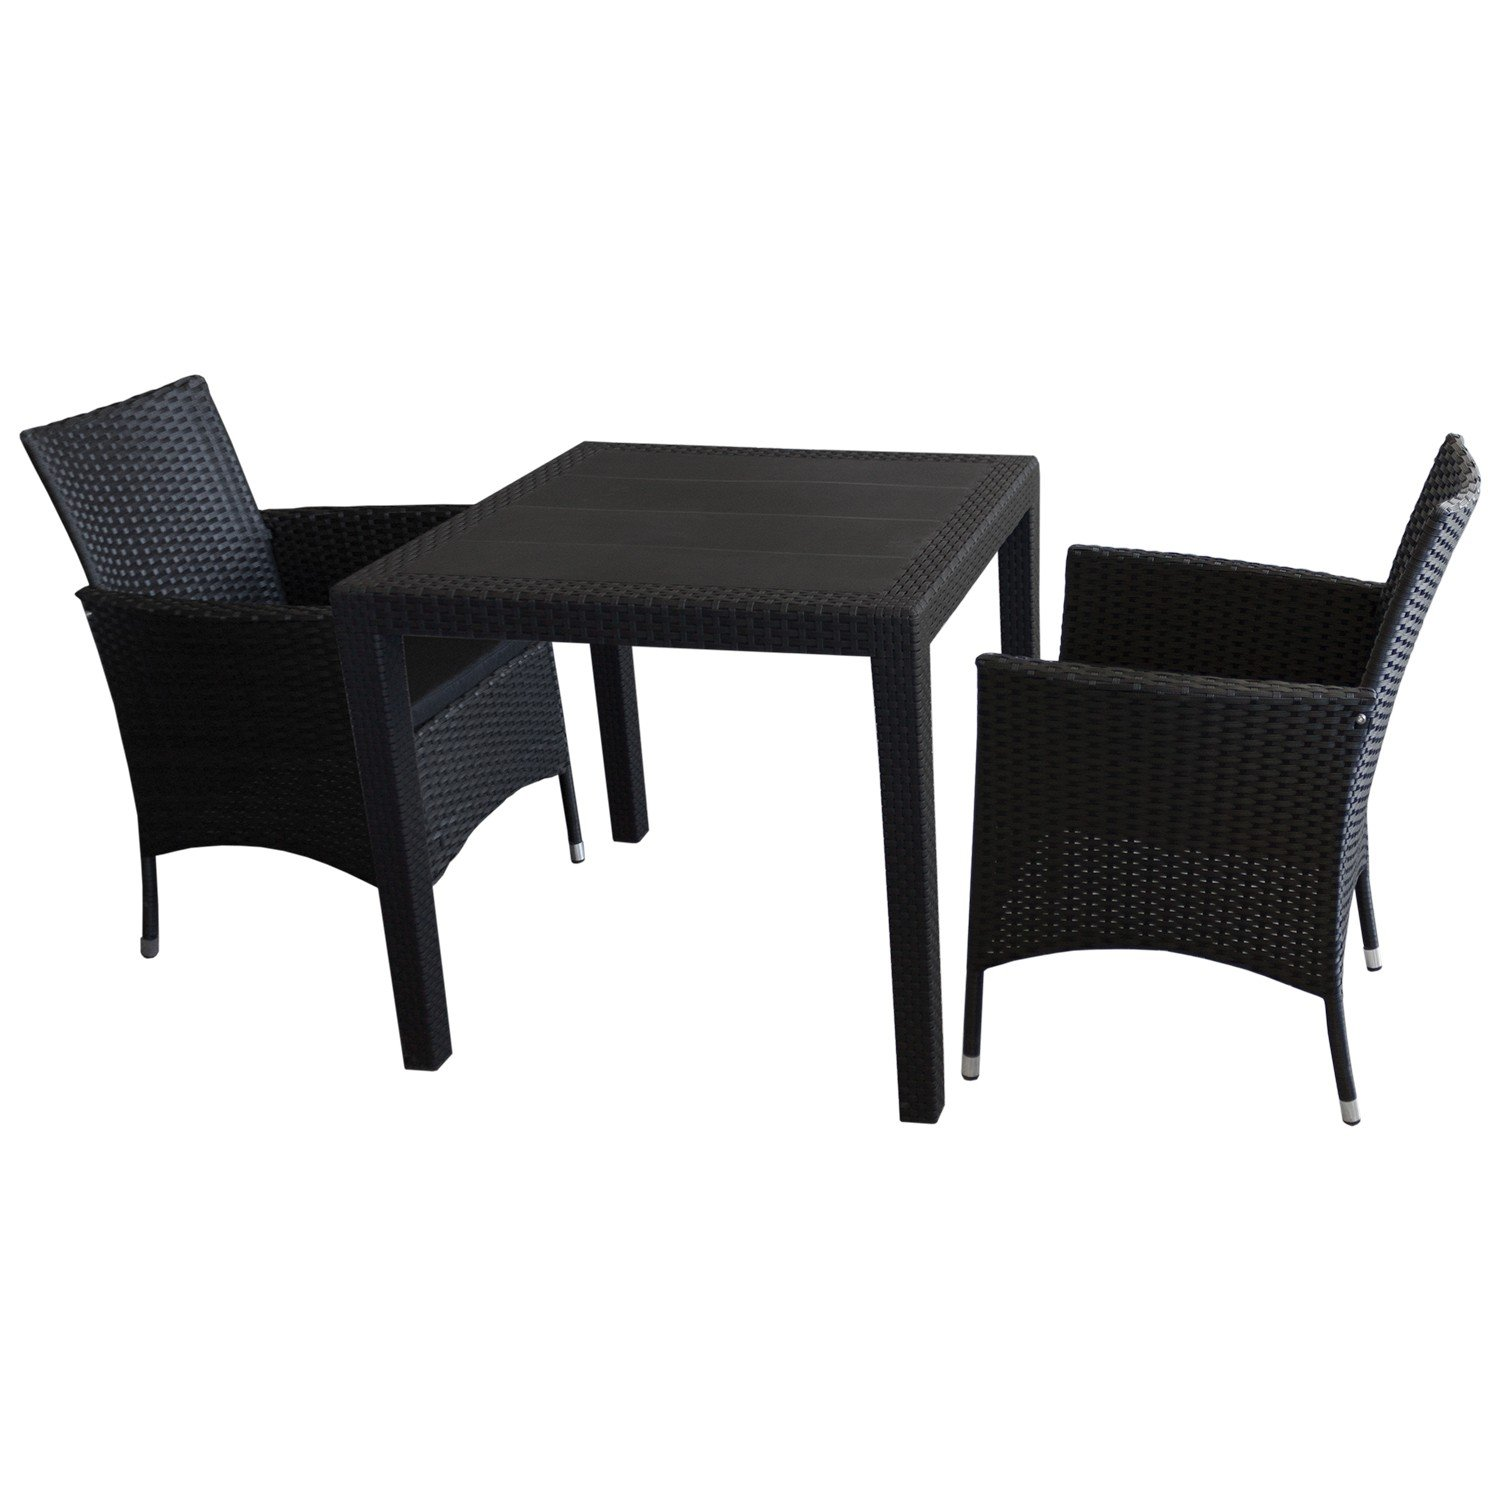 3tlg sitzgarnitur balkonm bel bistro set gartenm bel gartentisch kunststoff rattan look. Black Bedroom Furniture Sets. Home Design Ideas